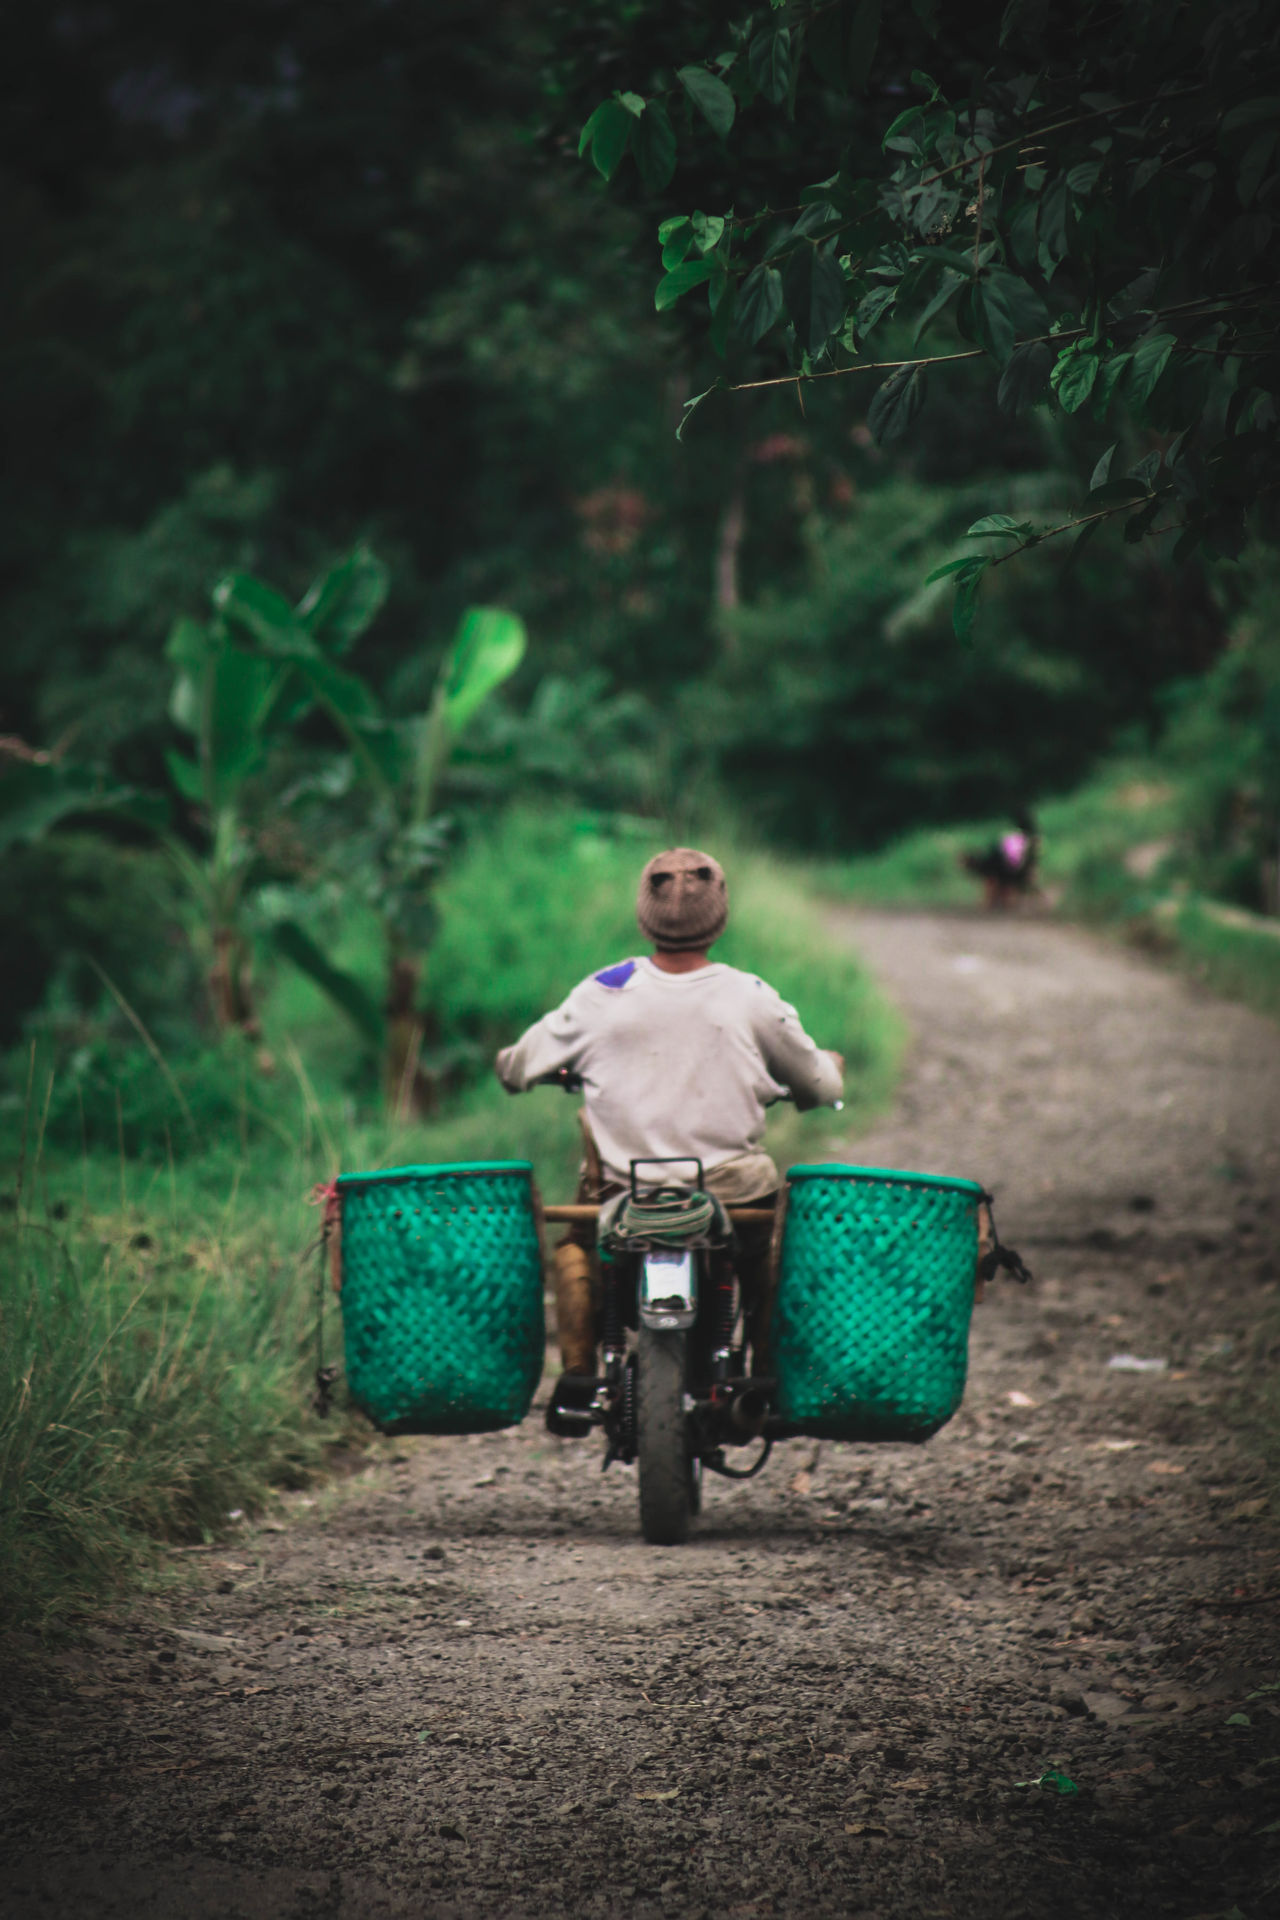 Activity Day Full Length Green Color Human Humaninterest Humaninterestindonesia Humaninterestphotography Men Nature One Person Outdoors People Real People Road Traditional Transportation Transportation Tree